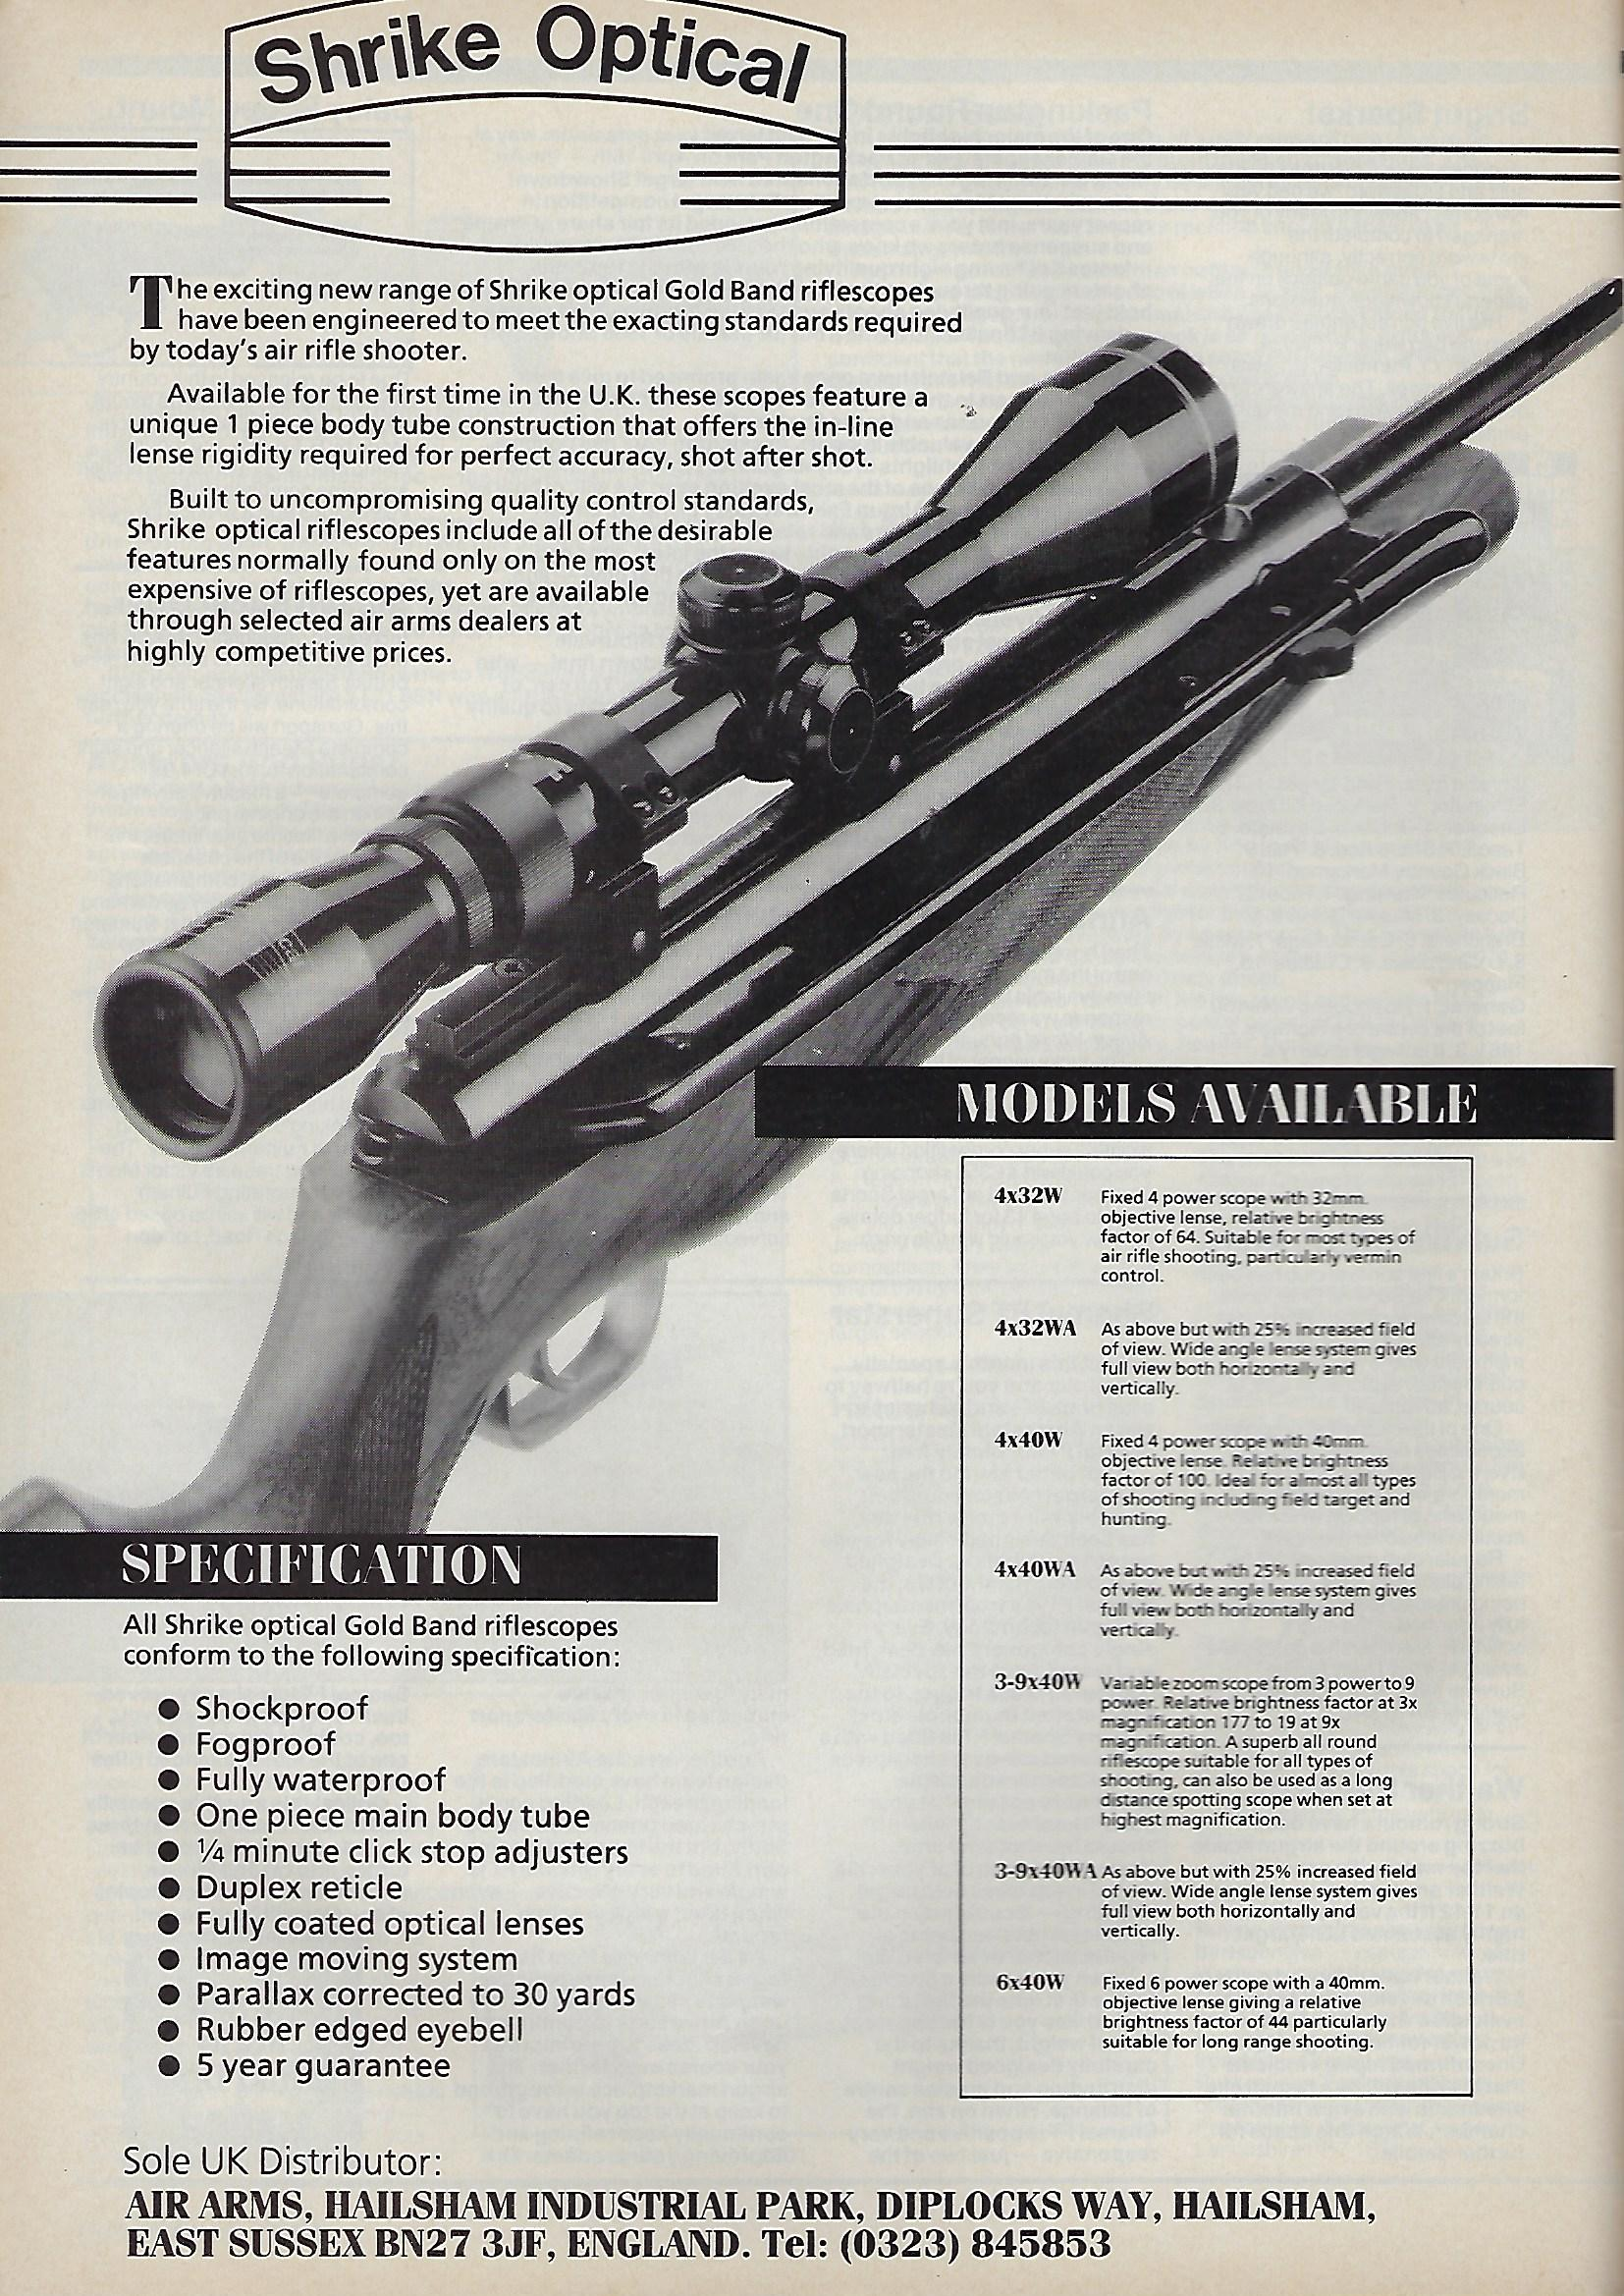 AGW - JANUARY 1988 - SHRIKE AD.jpg